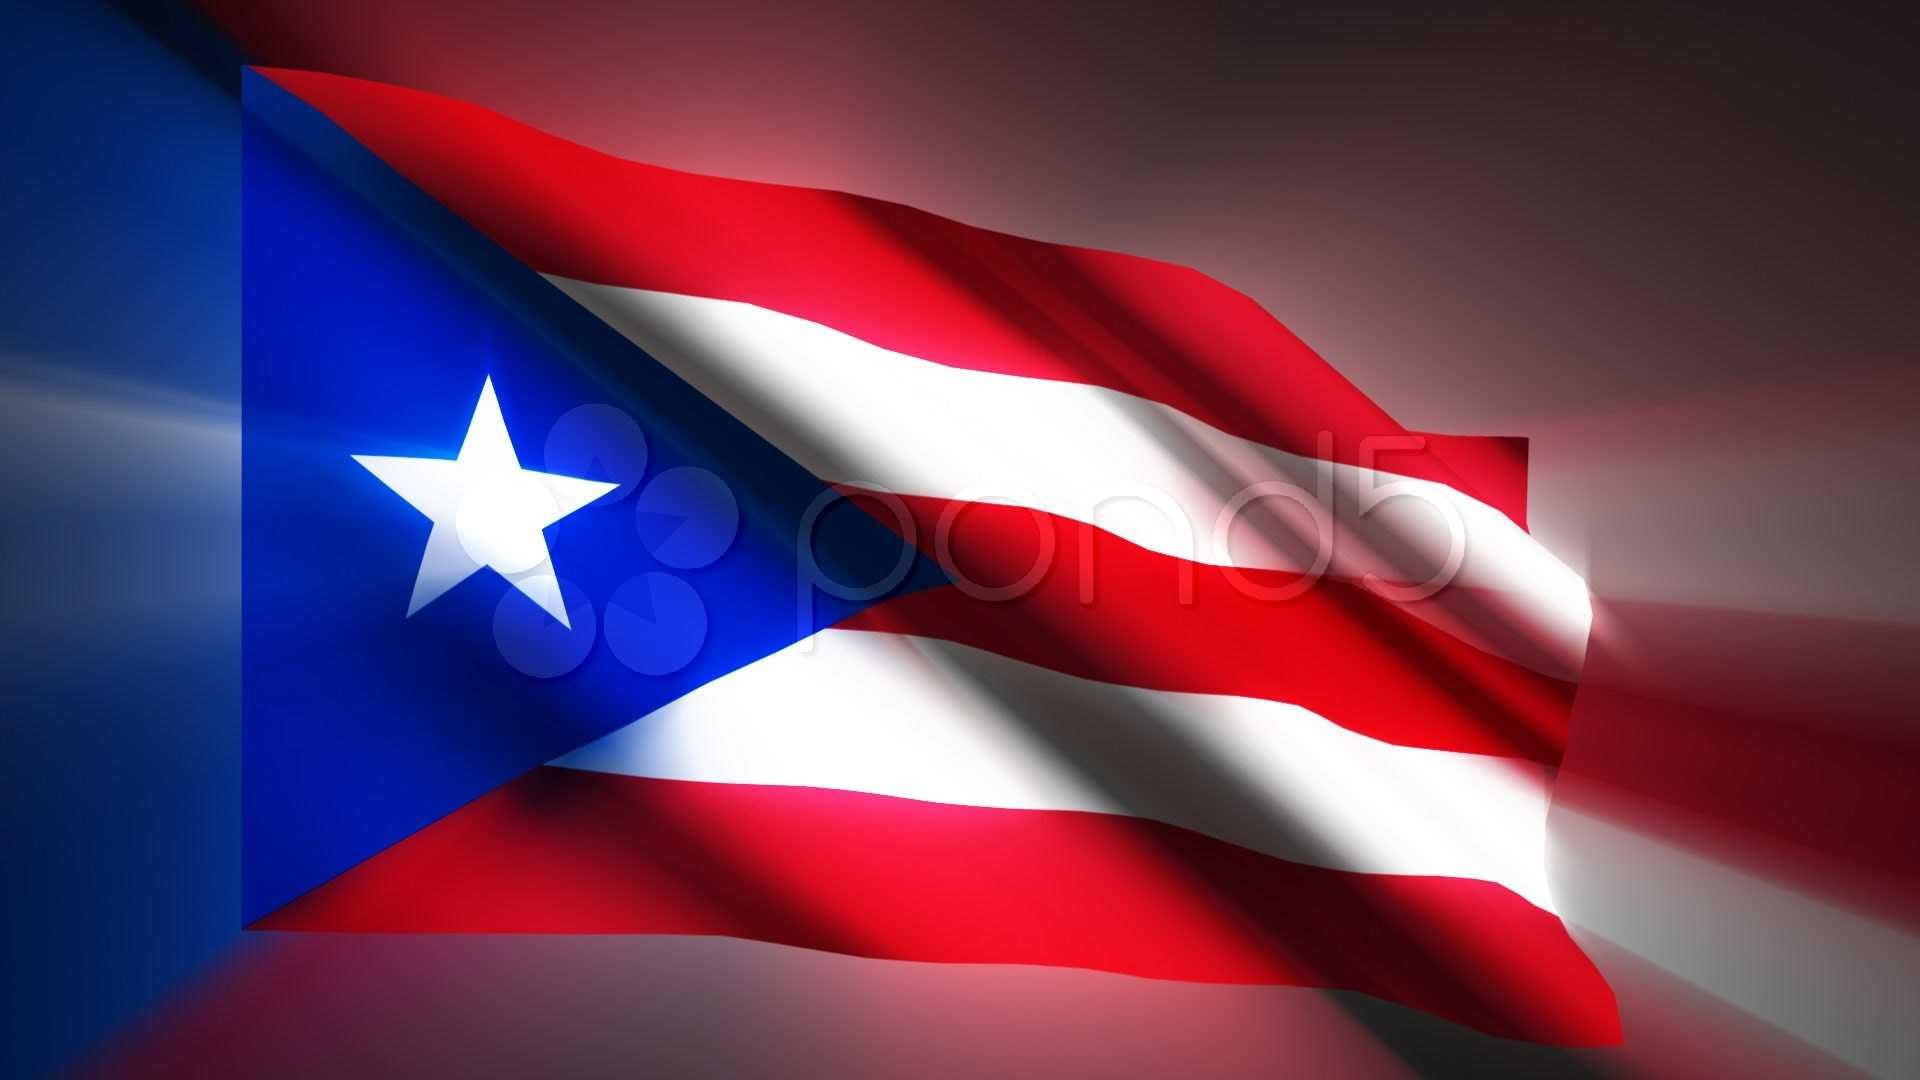 Puerto Rico Flag Wallpapers - Top Free